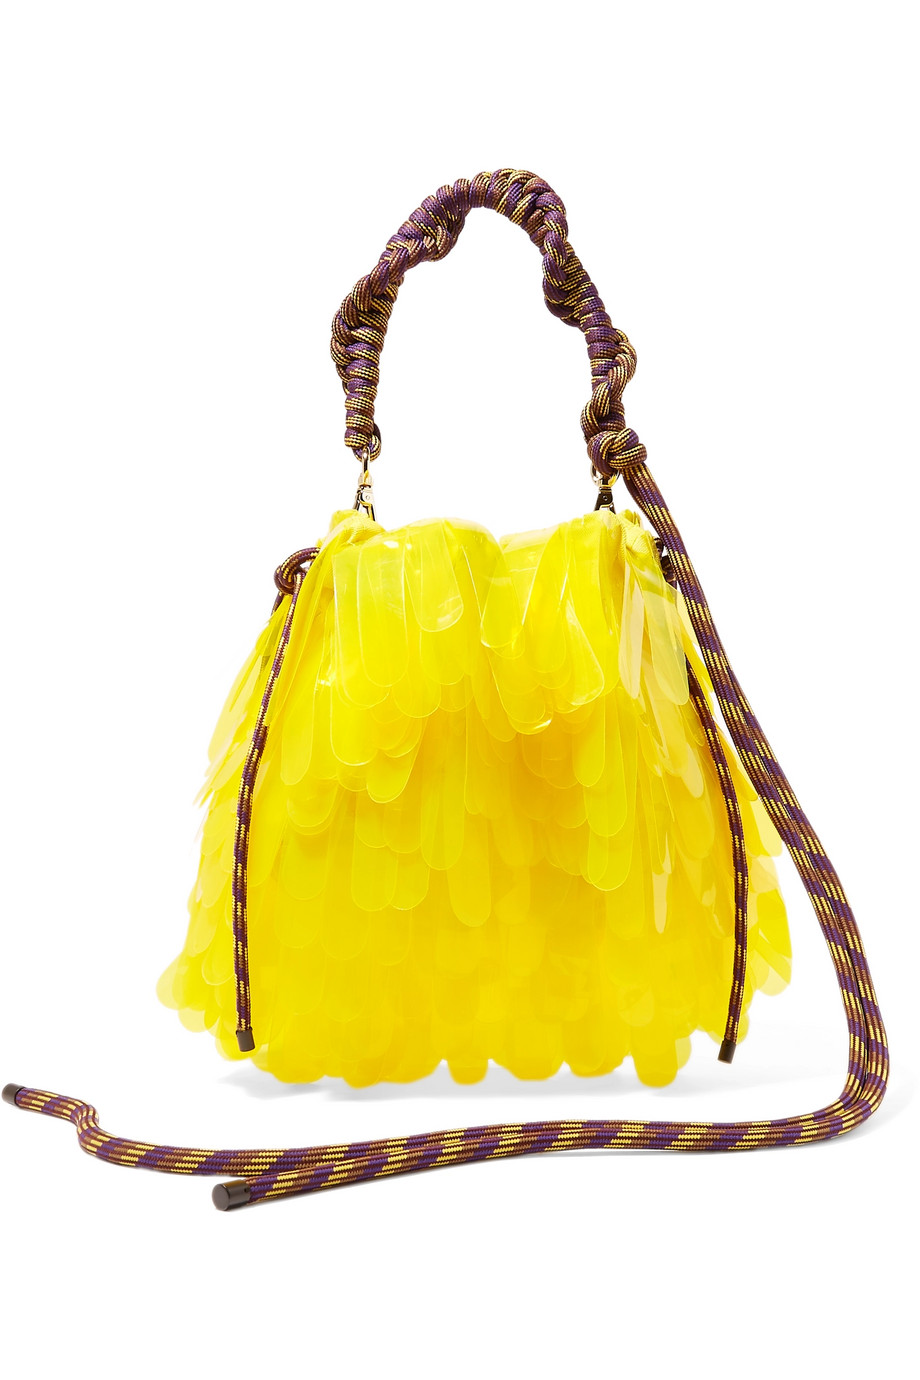 Exact Product: Rope-trimmed PVC-embellished tulle and canvas tote, Brand: Dries Van Noten, Available on: net-a-porter.com, Price: $725